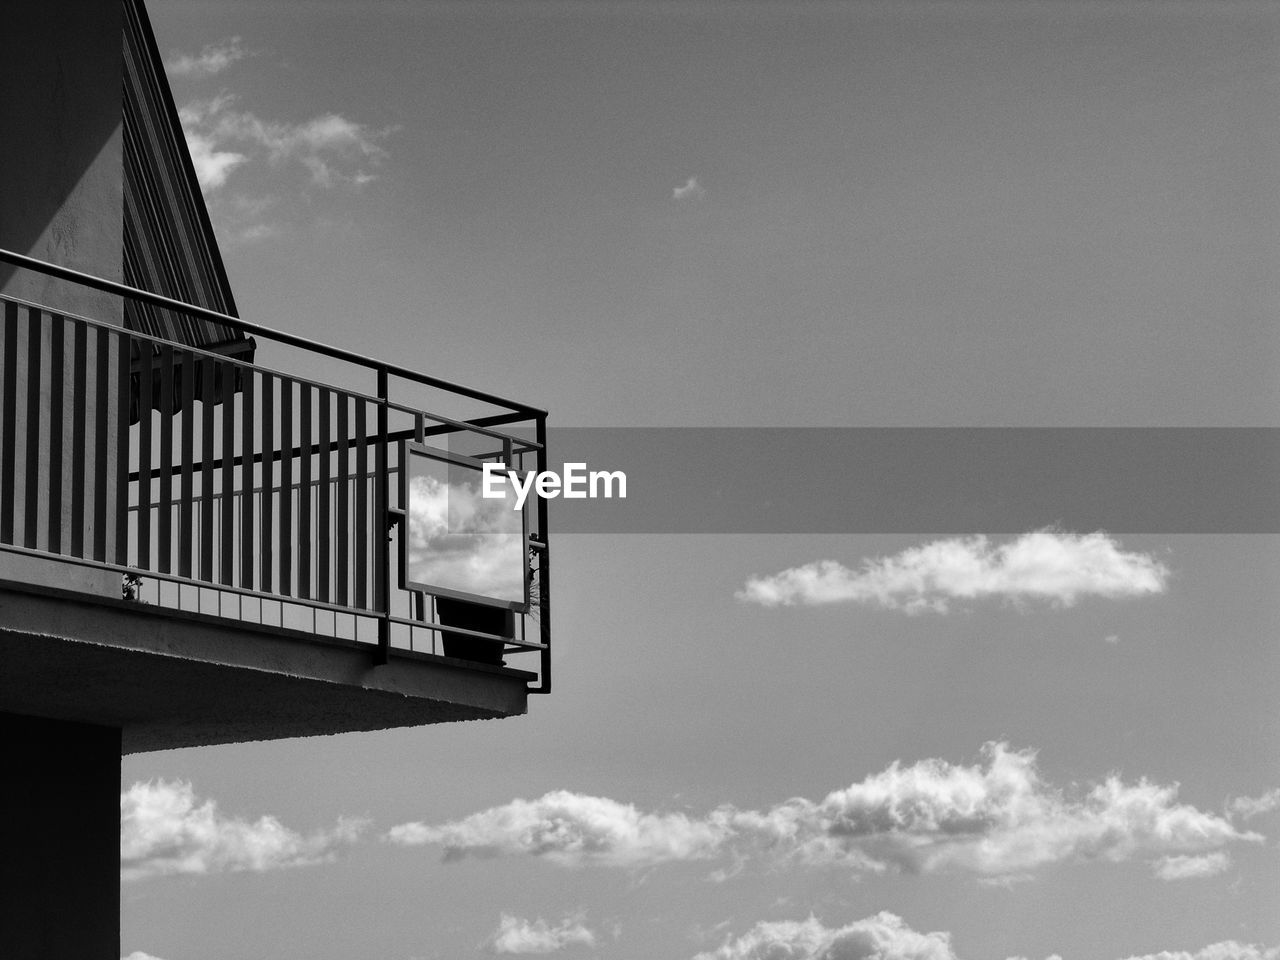 sky, cloud - sky, built structure, low angle view, architecture, nature, no people, day, building exterior, outdoors, bridge, bridge - man made structure, building, connection, transportation, sunlight, high section, city, window